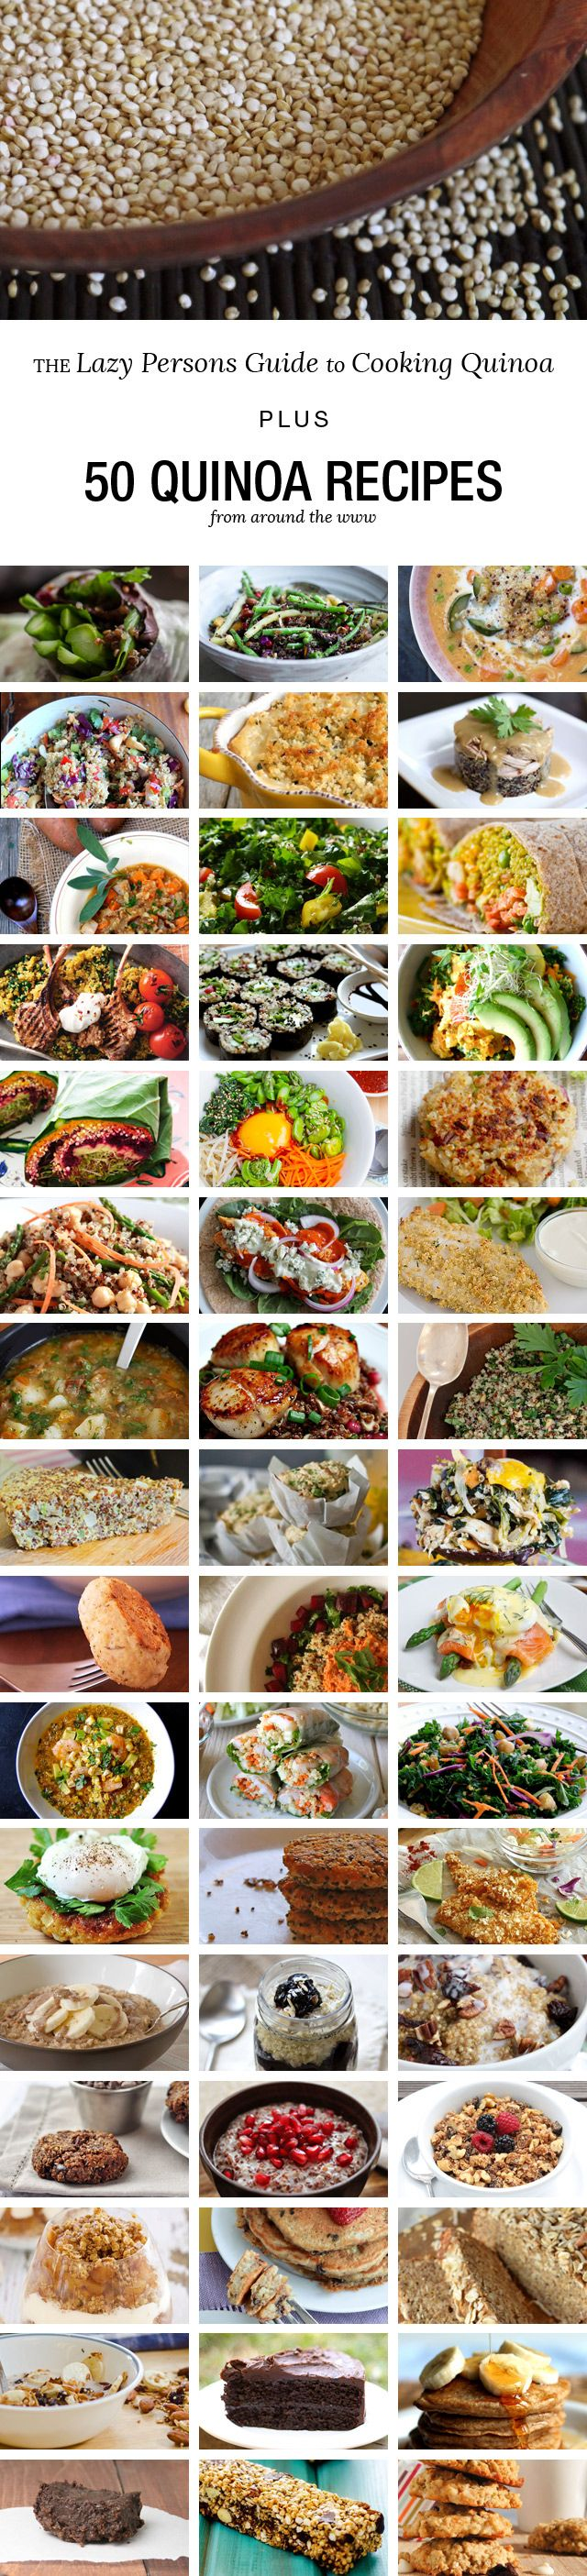 326 Best Images About Quinoa And Chia Seed Recipes On Pinterest  Mexican  Quinoa Salad, Quinoa Salad And Benefits Of Chia Seeds